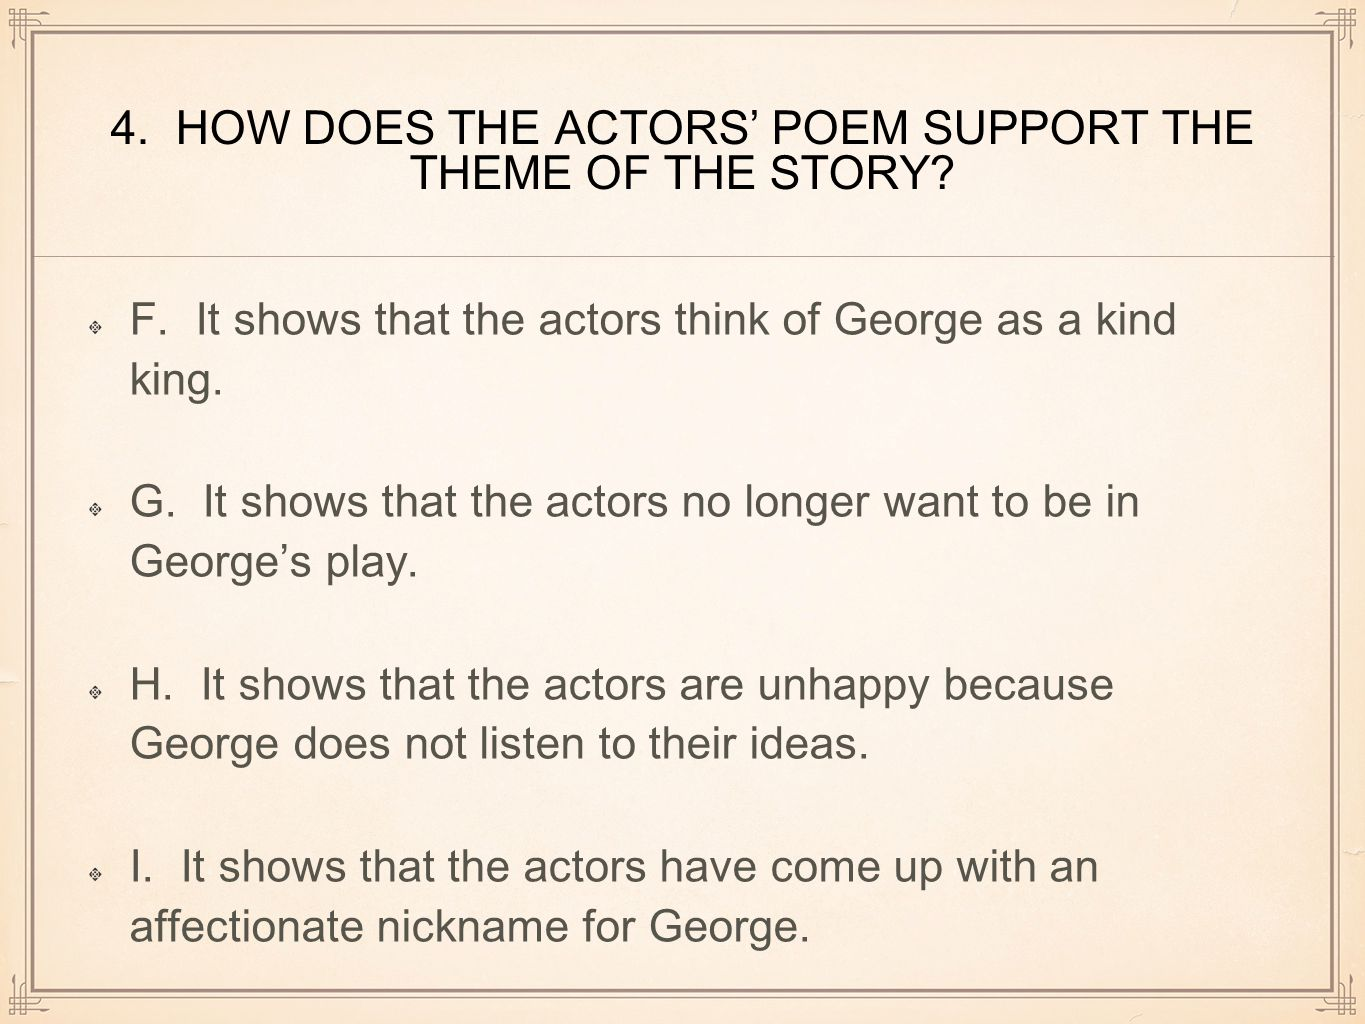 4. HOW DOES THE ACTORS' POEM SUPPORT THE THEME OF THE STORY